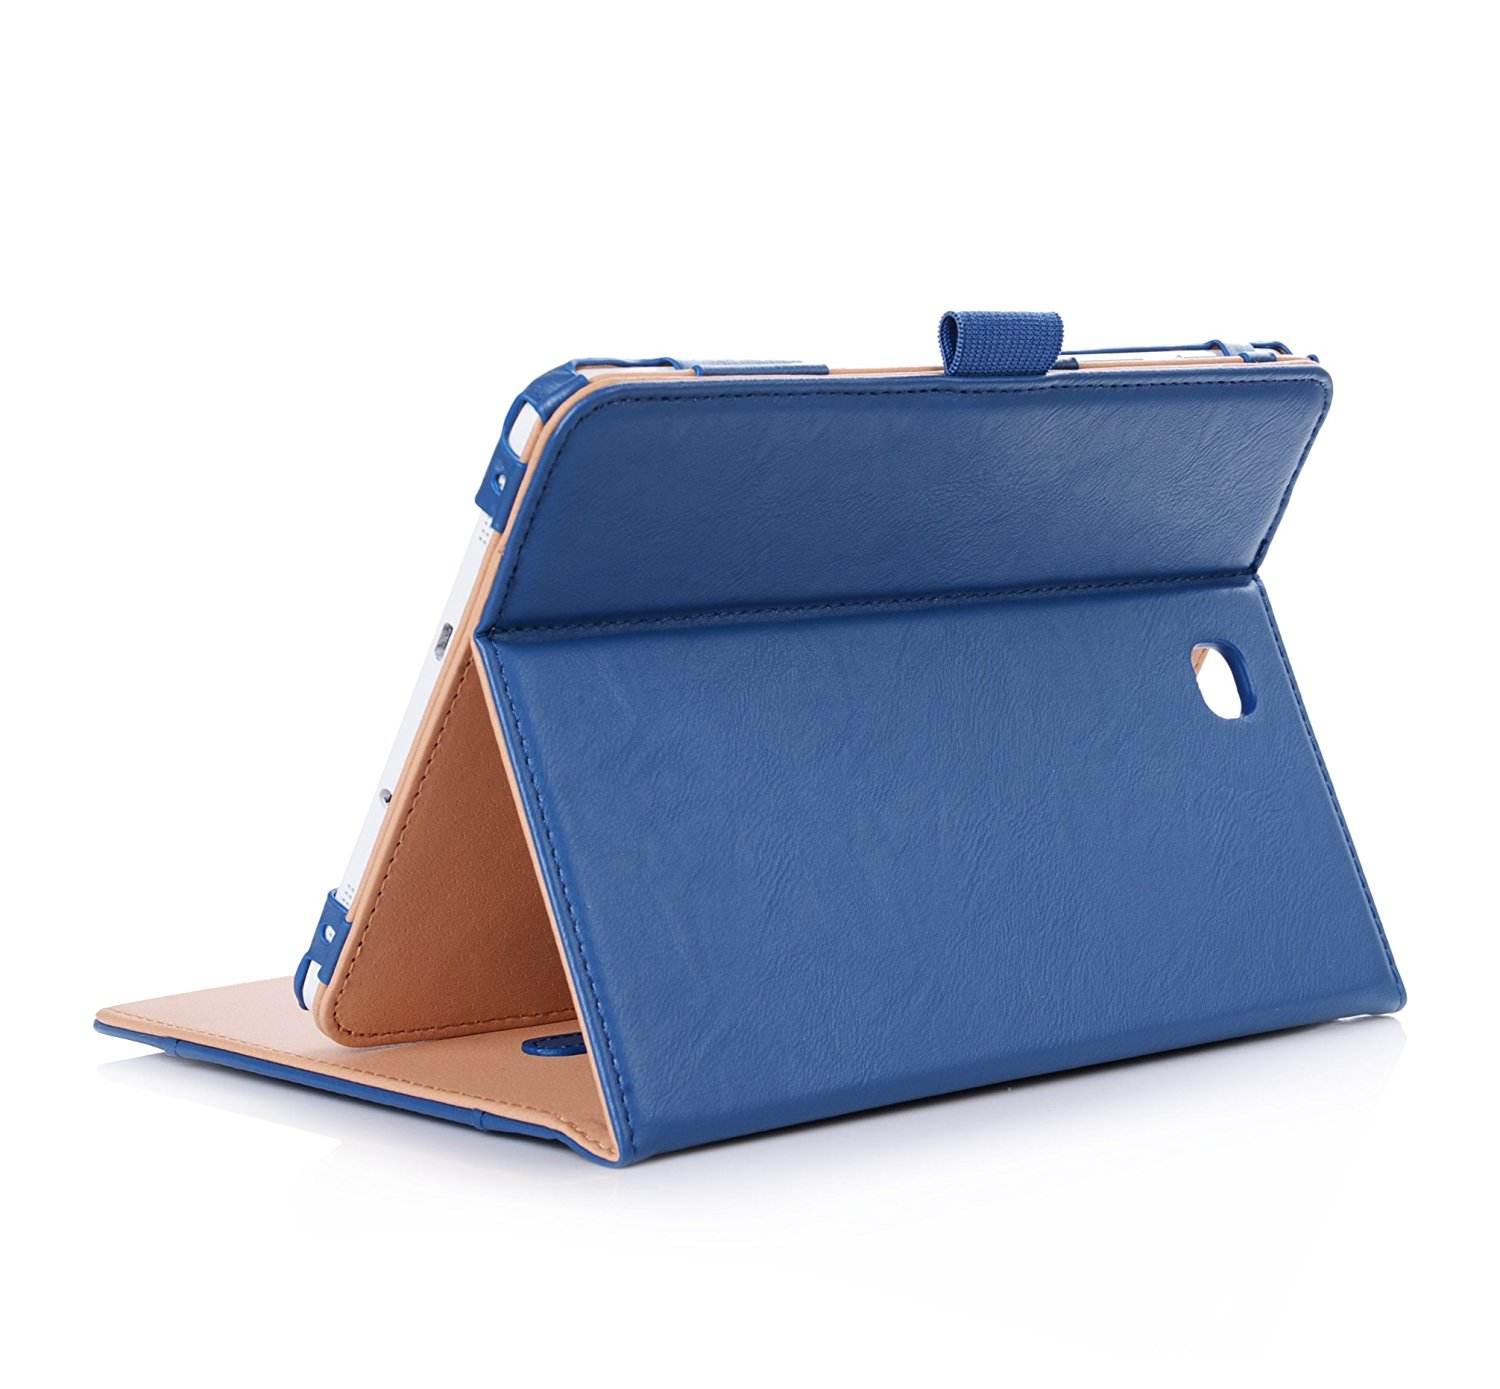 Samsung Galaxy Tab S2 8.0 Case - Leather Stand Folio Cove...